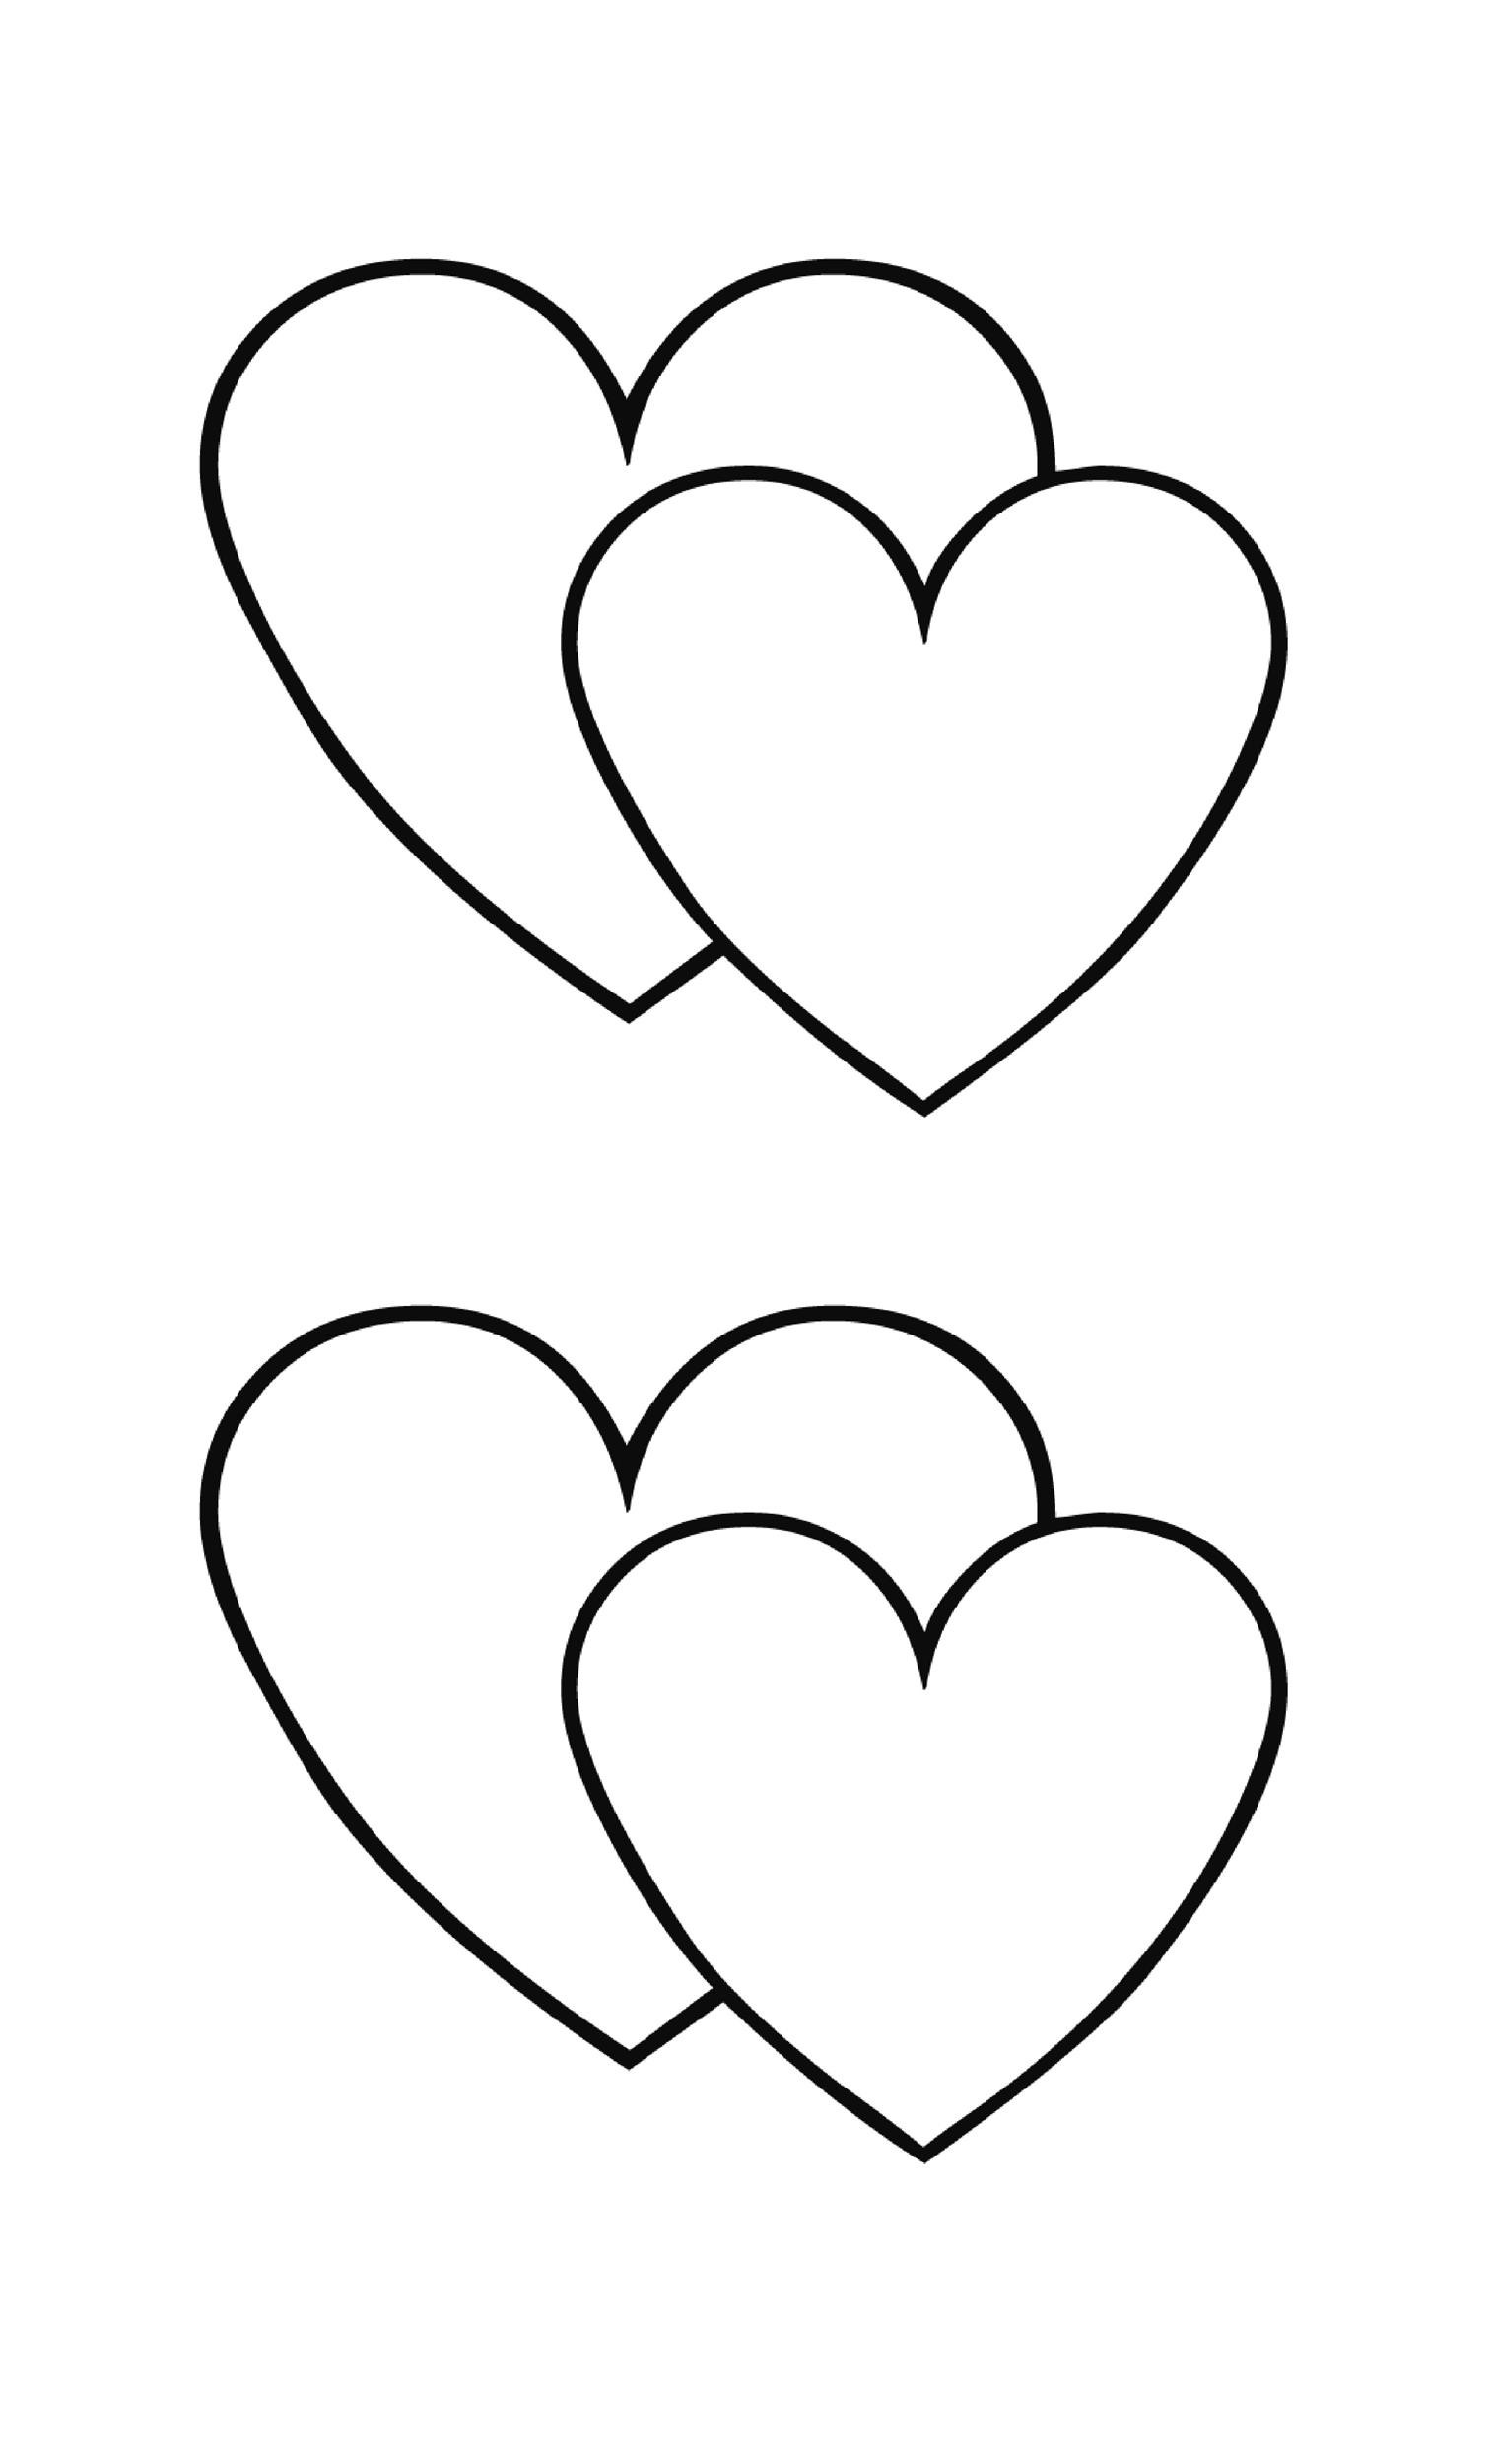 image about Hearts Printable named 40 Printable Middle Templates 15 Use Illustrations